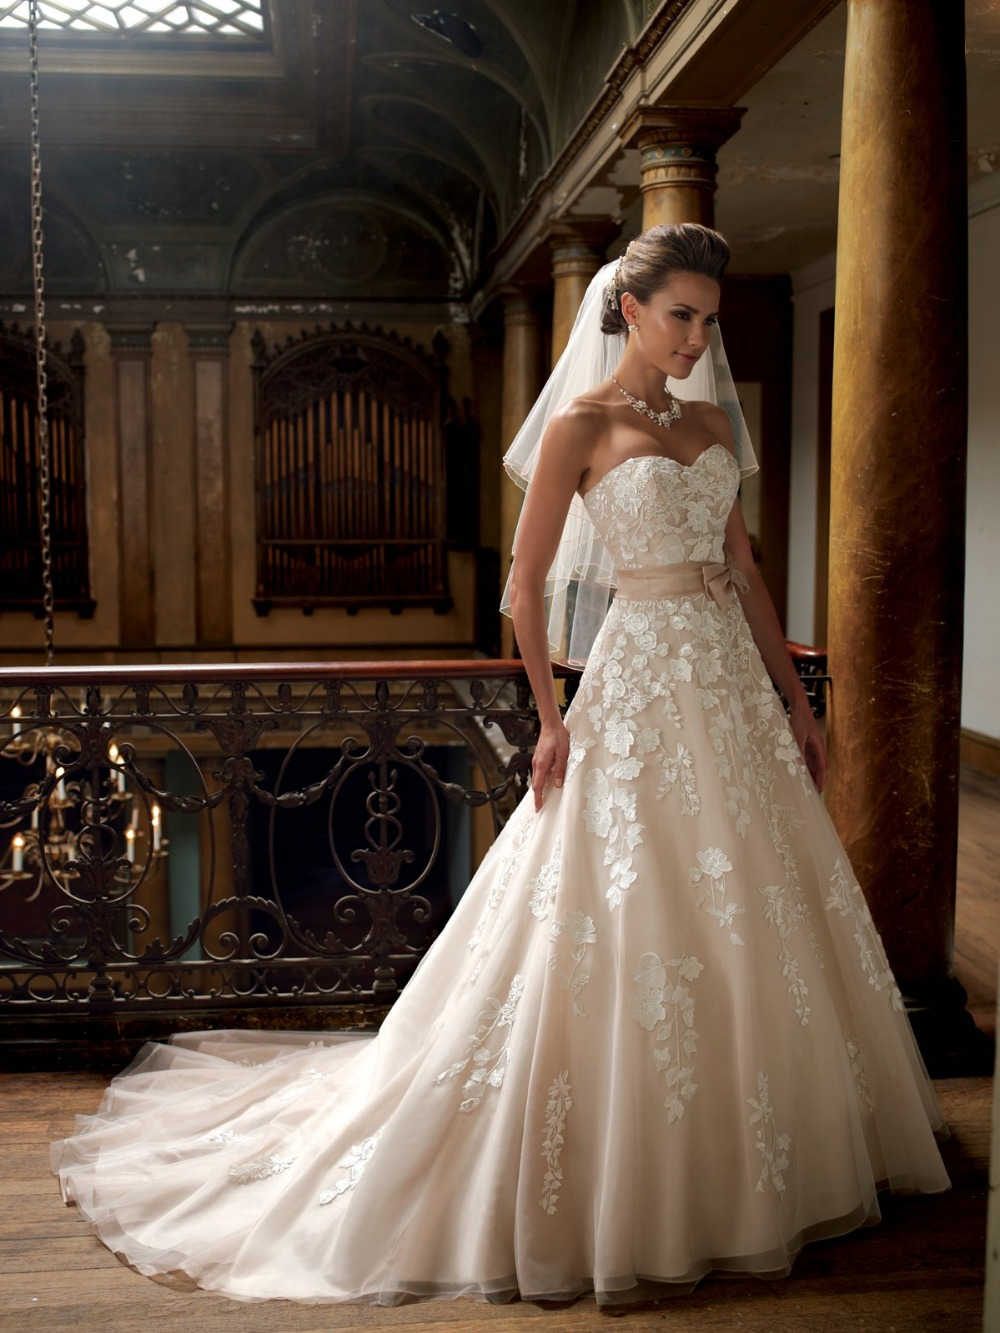 Small Crop Of Champagne Wedding Dress